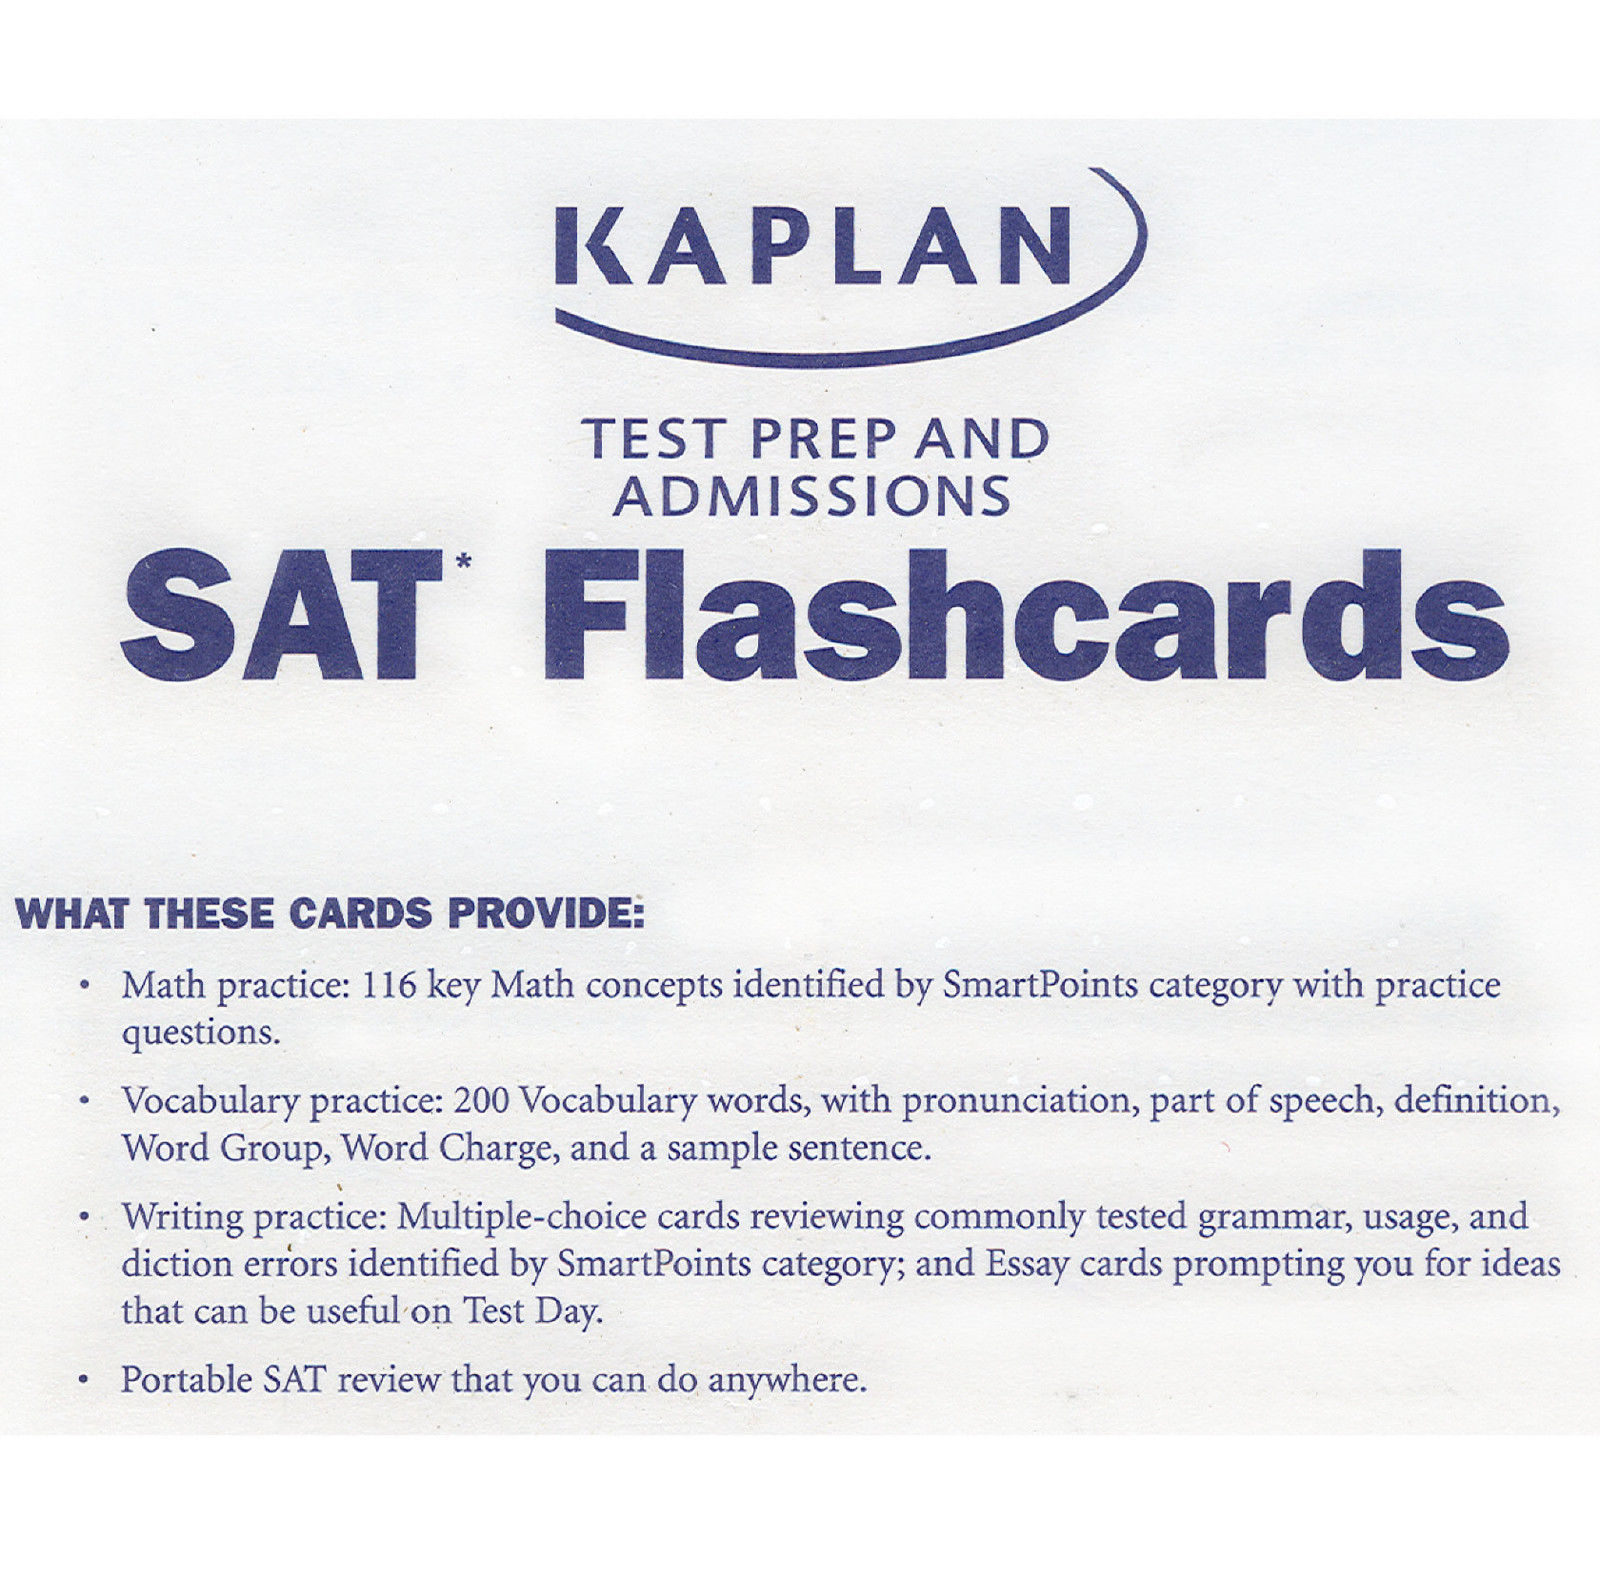 Kaplan Test Prep Admissions Sat Flashcards Math Vocabulary Writing Practice New